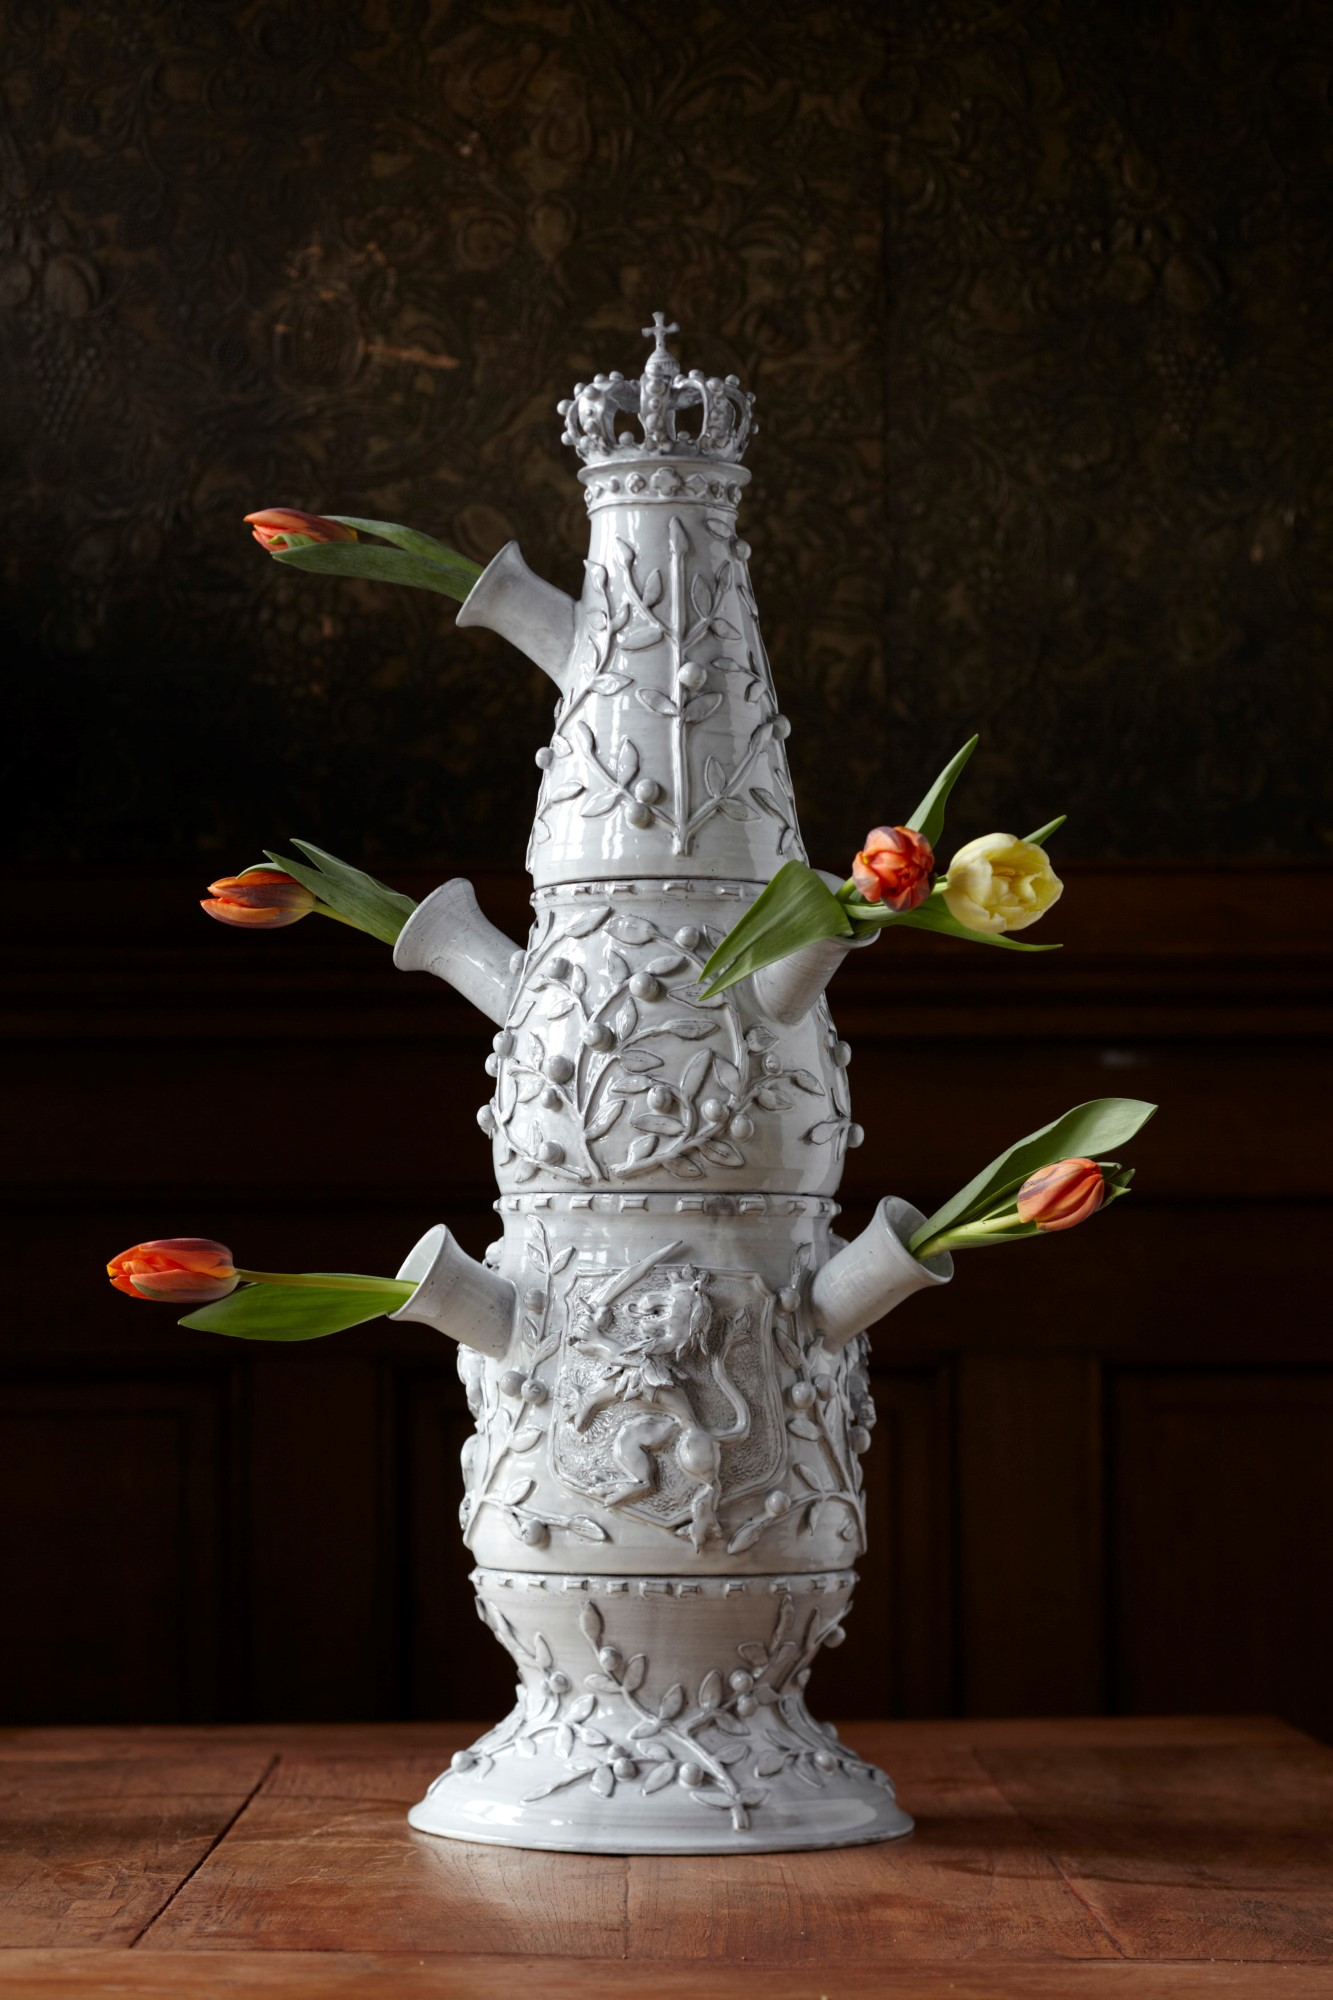 Tulip vase - King Willem Alexander